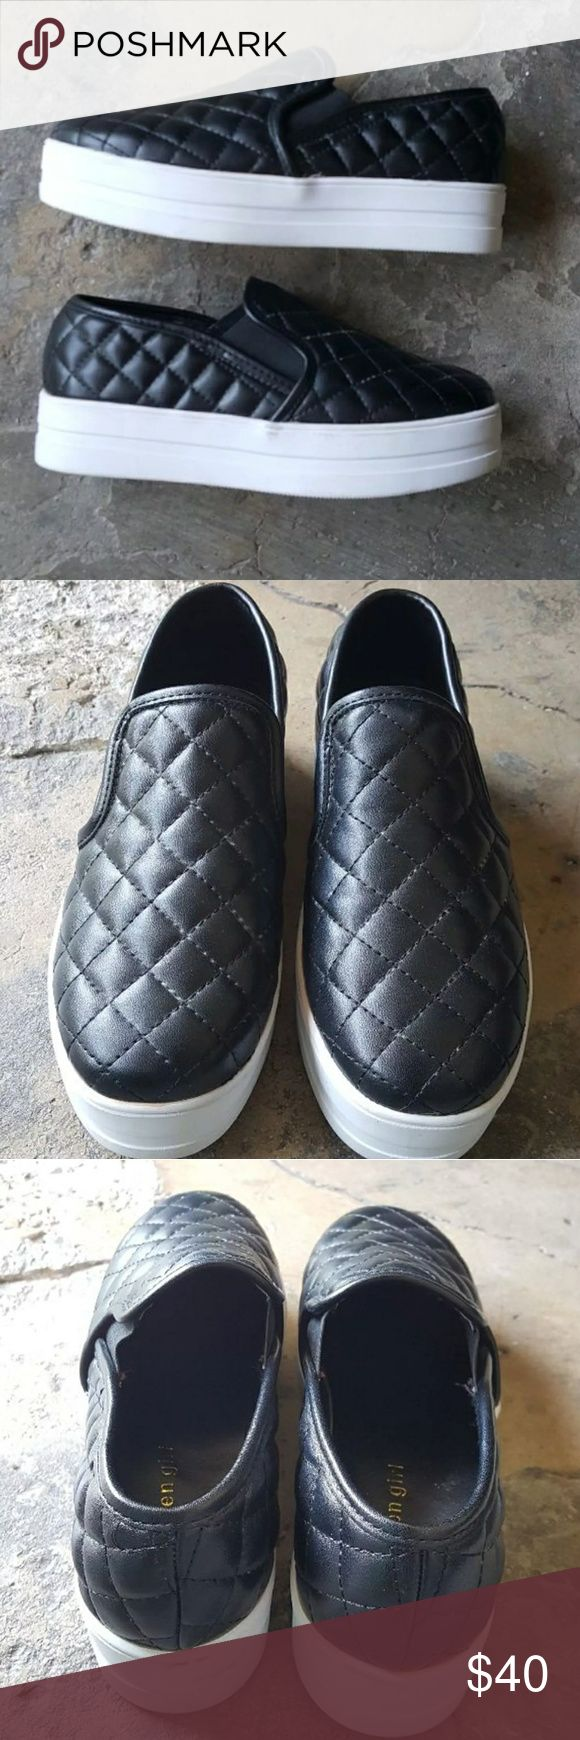 Madden girl platform sneakers Madden girl platform sneakers. Gently loved. A small flaw shown on the side of the shoe in pic 4. Size 6. #maddengirl #stevemadden #platforms #platformsneakers Madden Girl Shoes Platforms